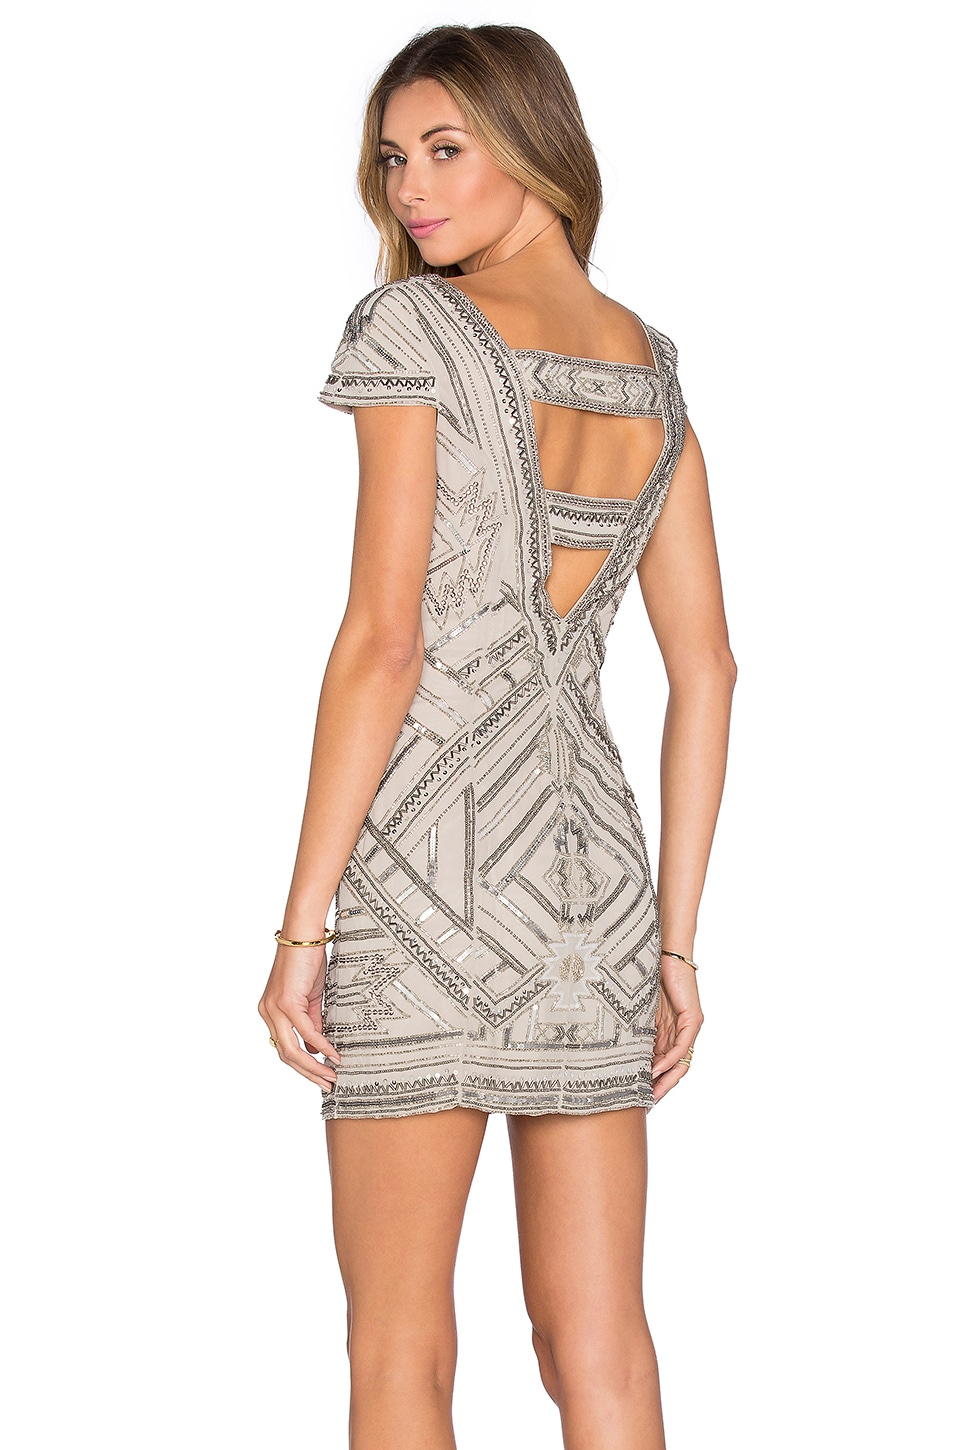 Parker Elijah Embellished Dress in Silver